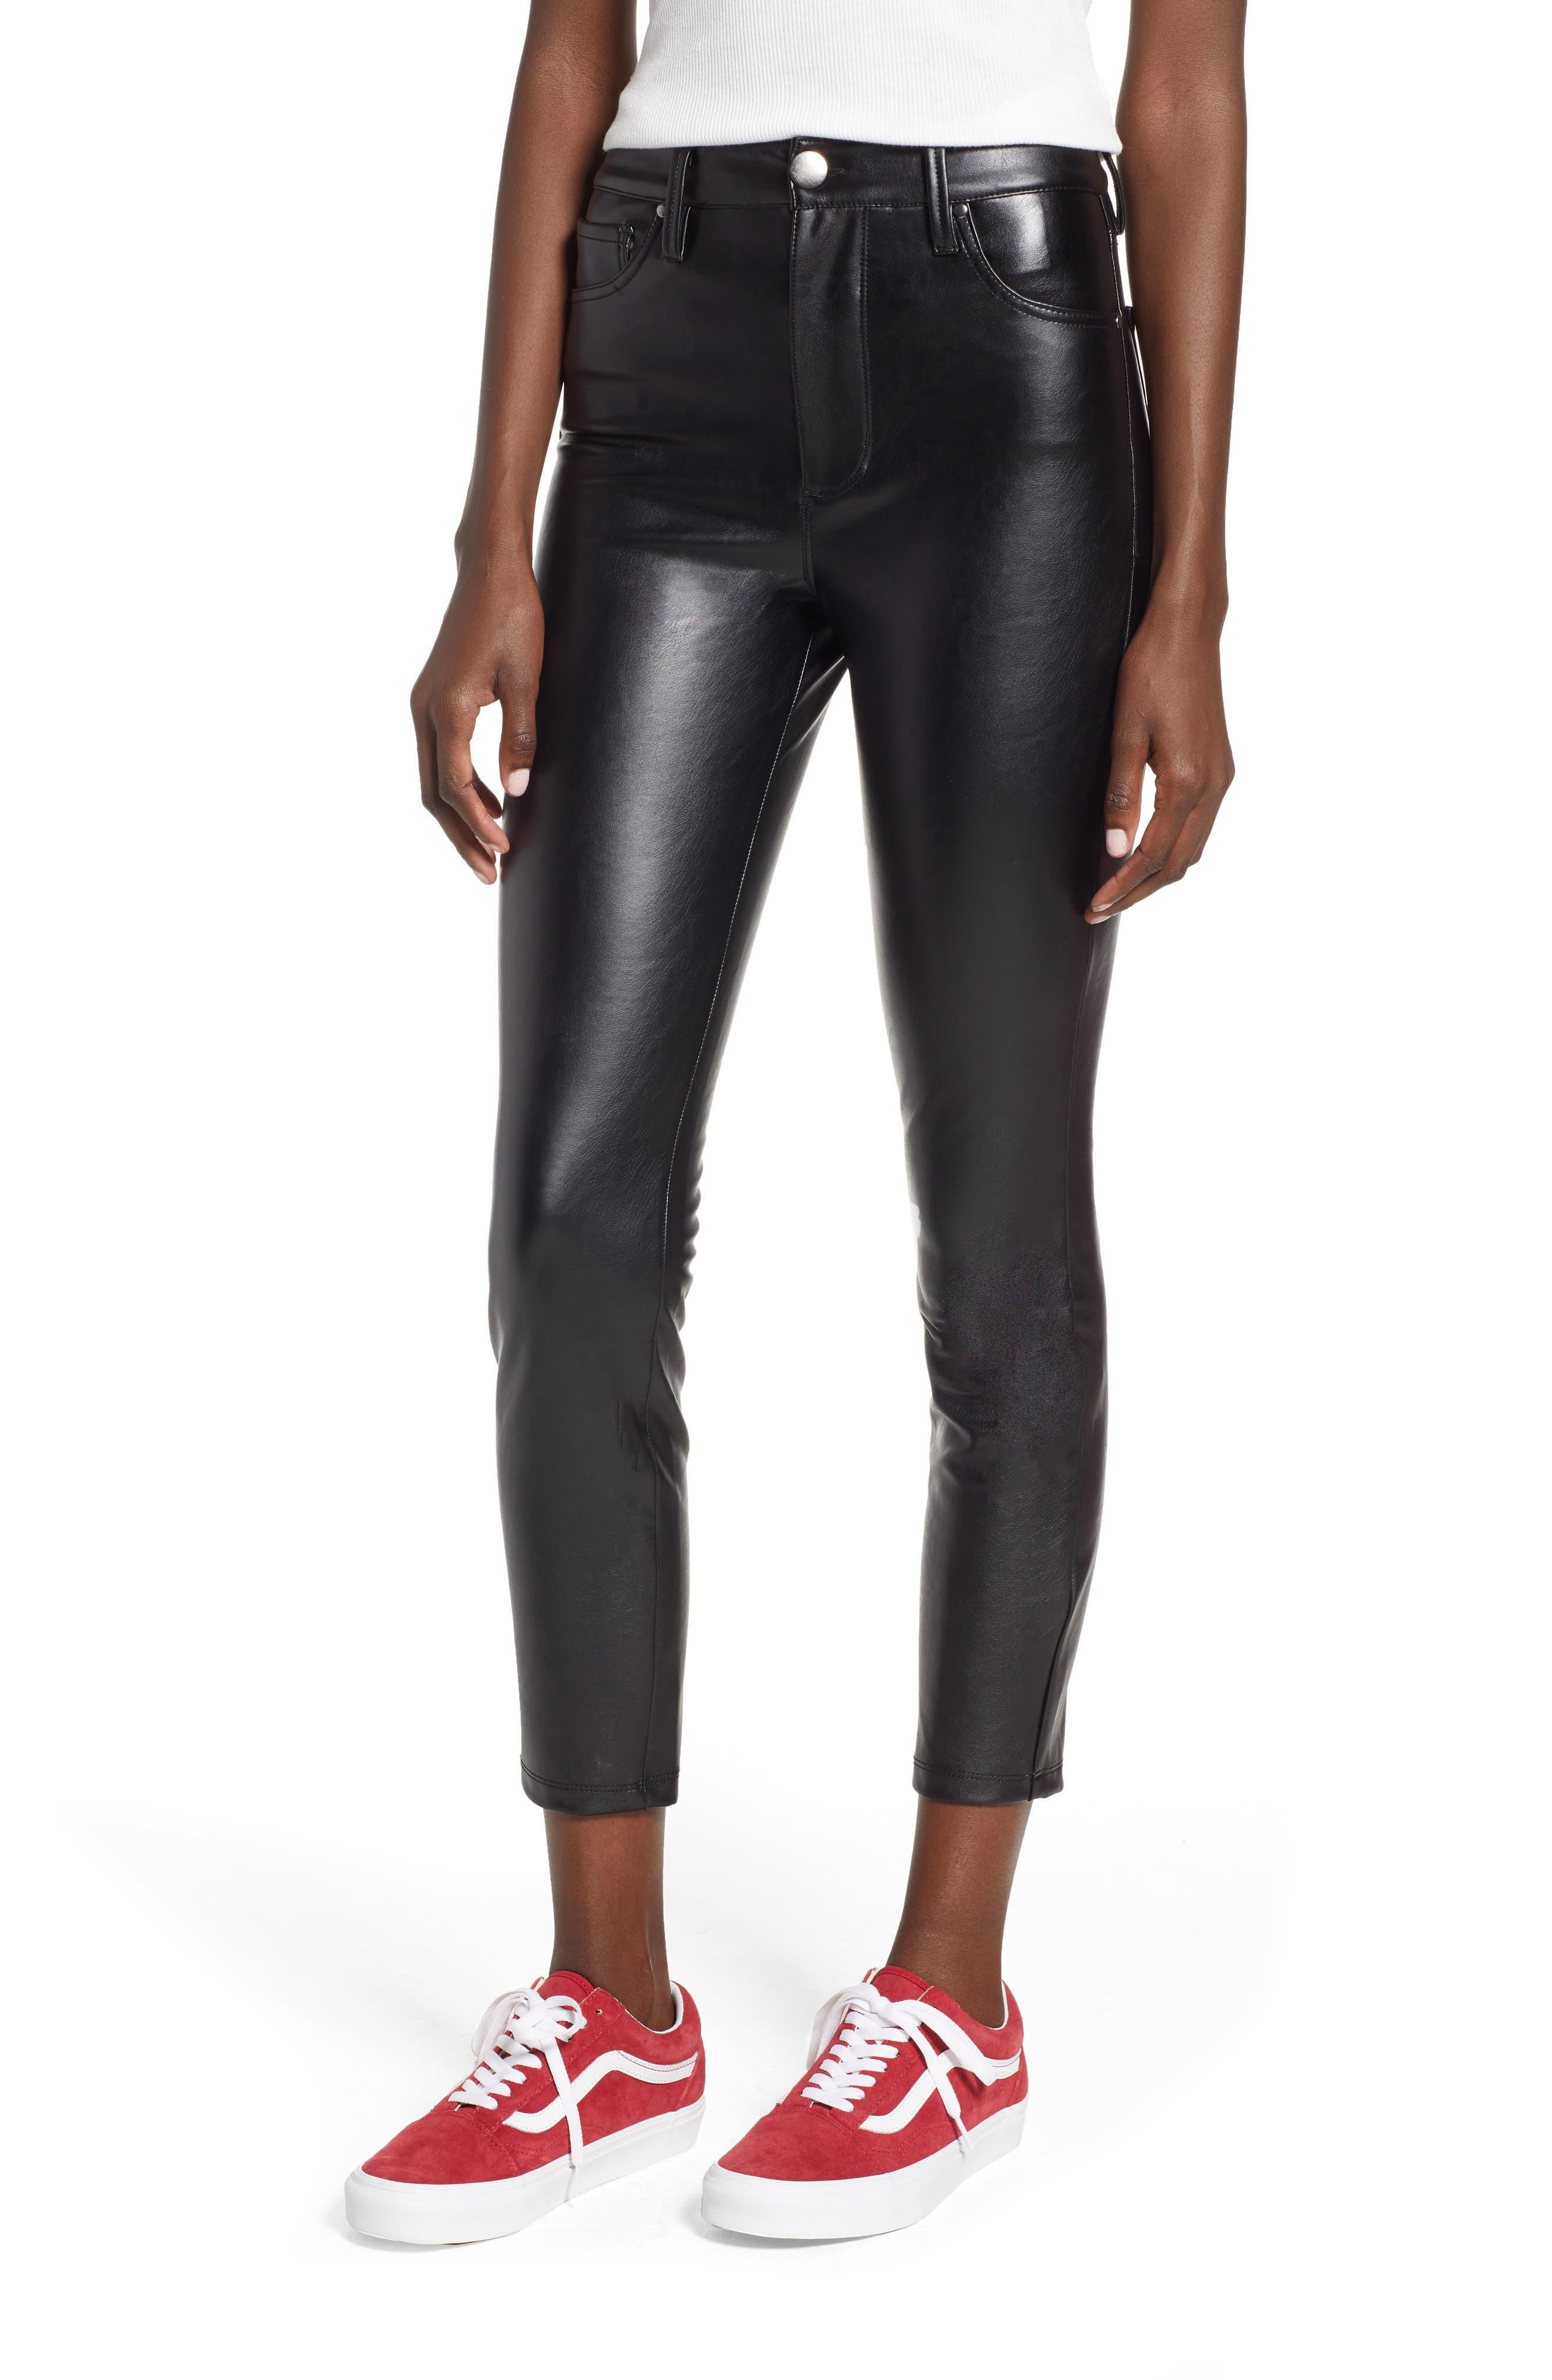 TINSEL, High Waist Faux Leather Skinny Pants, Main thumbnail 1, color, 001